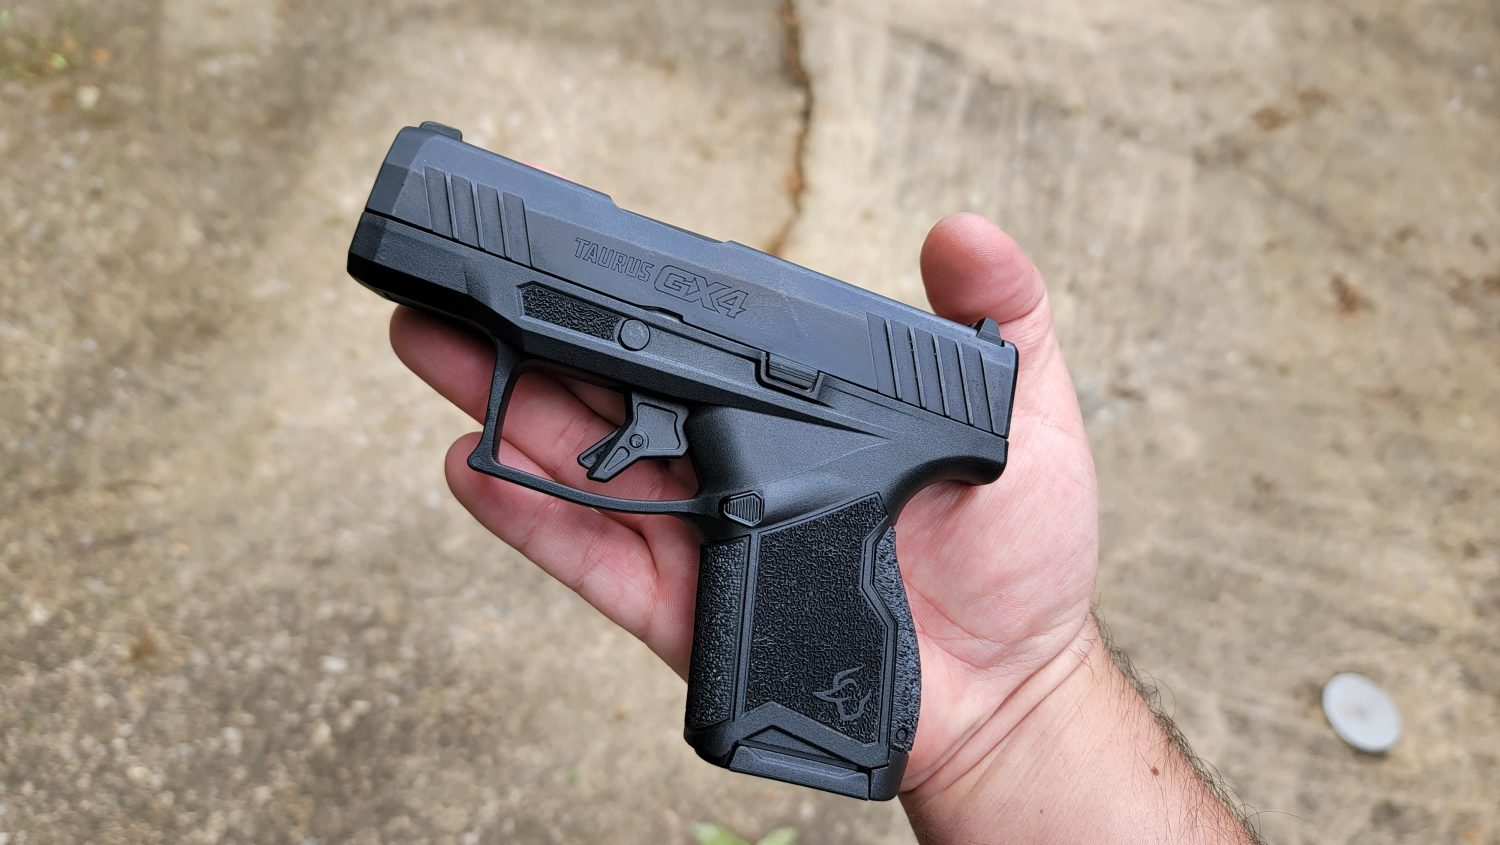 Safariland GX4 Holster Fits Added to Concealed Carry Lineup